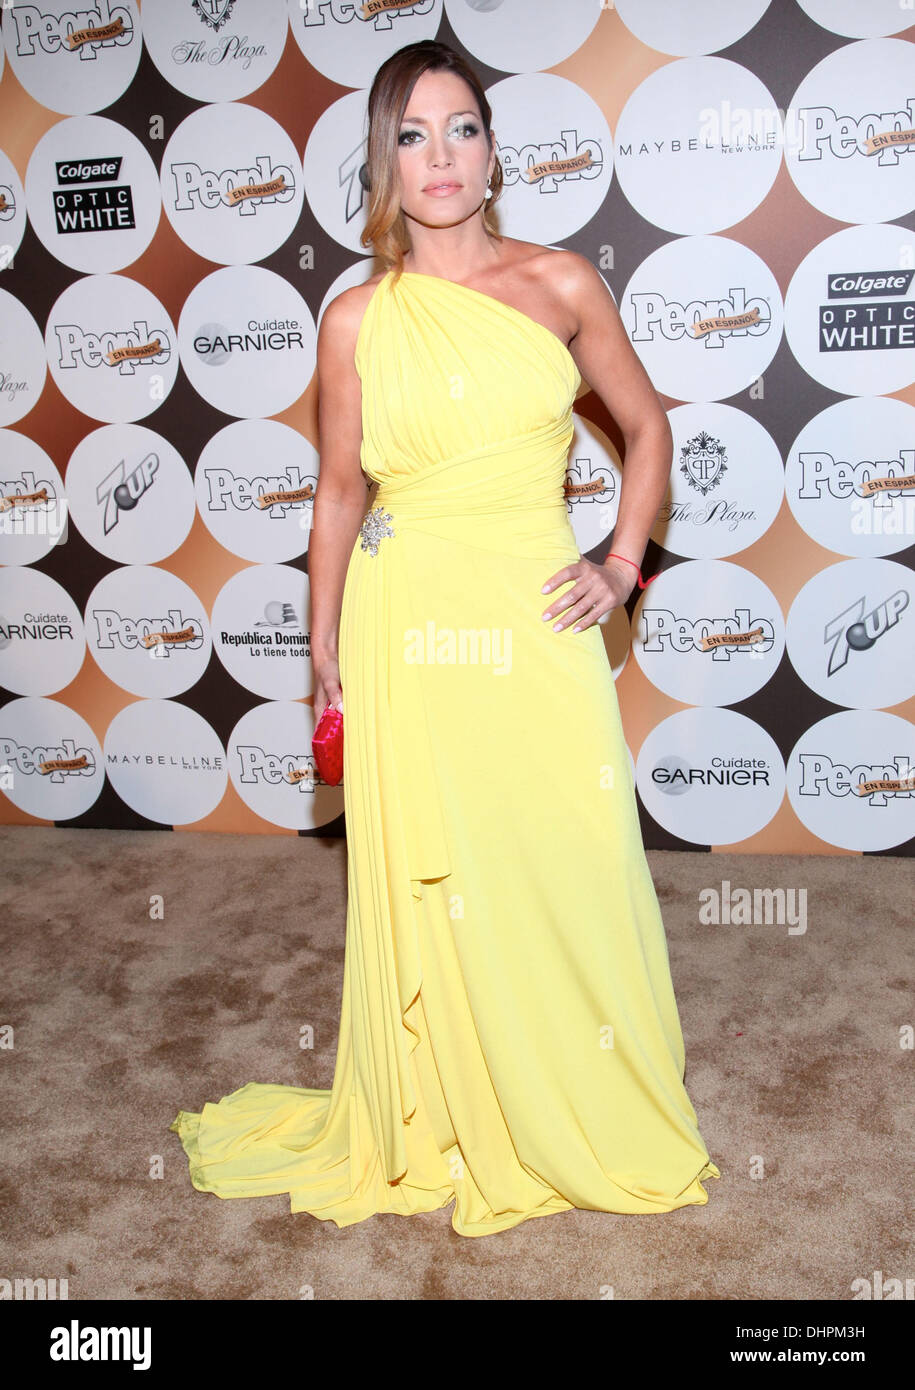 Adriana Fonseca People En Espanol 50 Most Beautiful Gala At The Plaza Hotel New York City USA